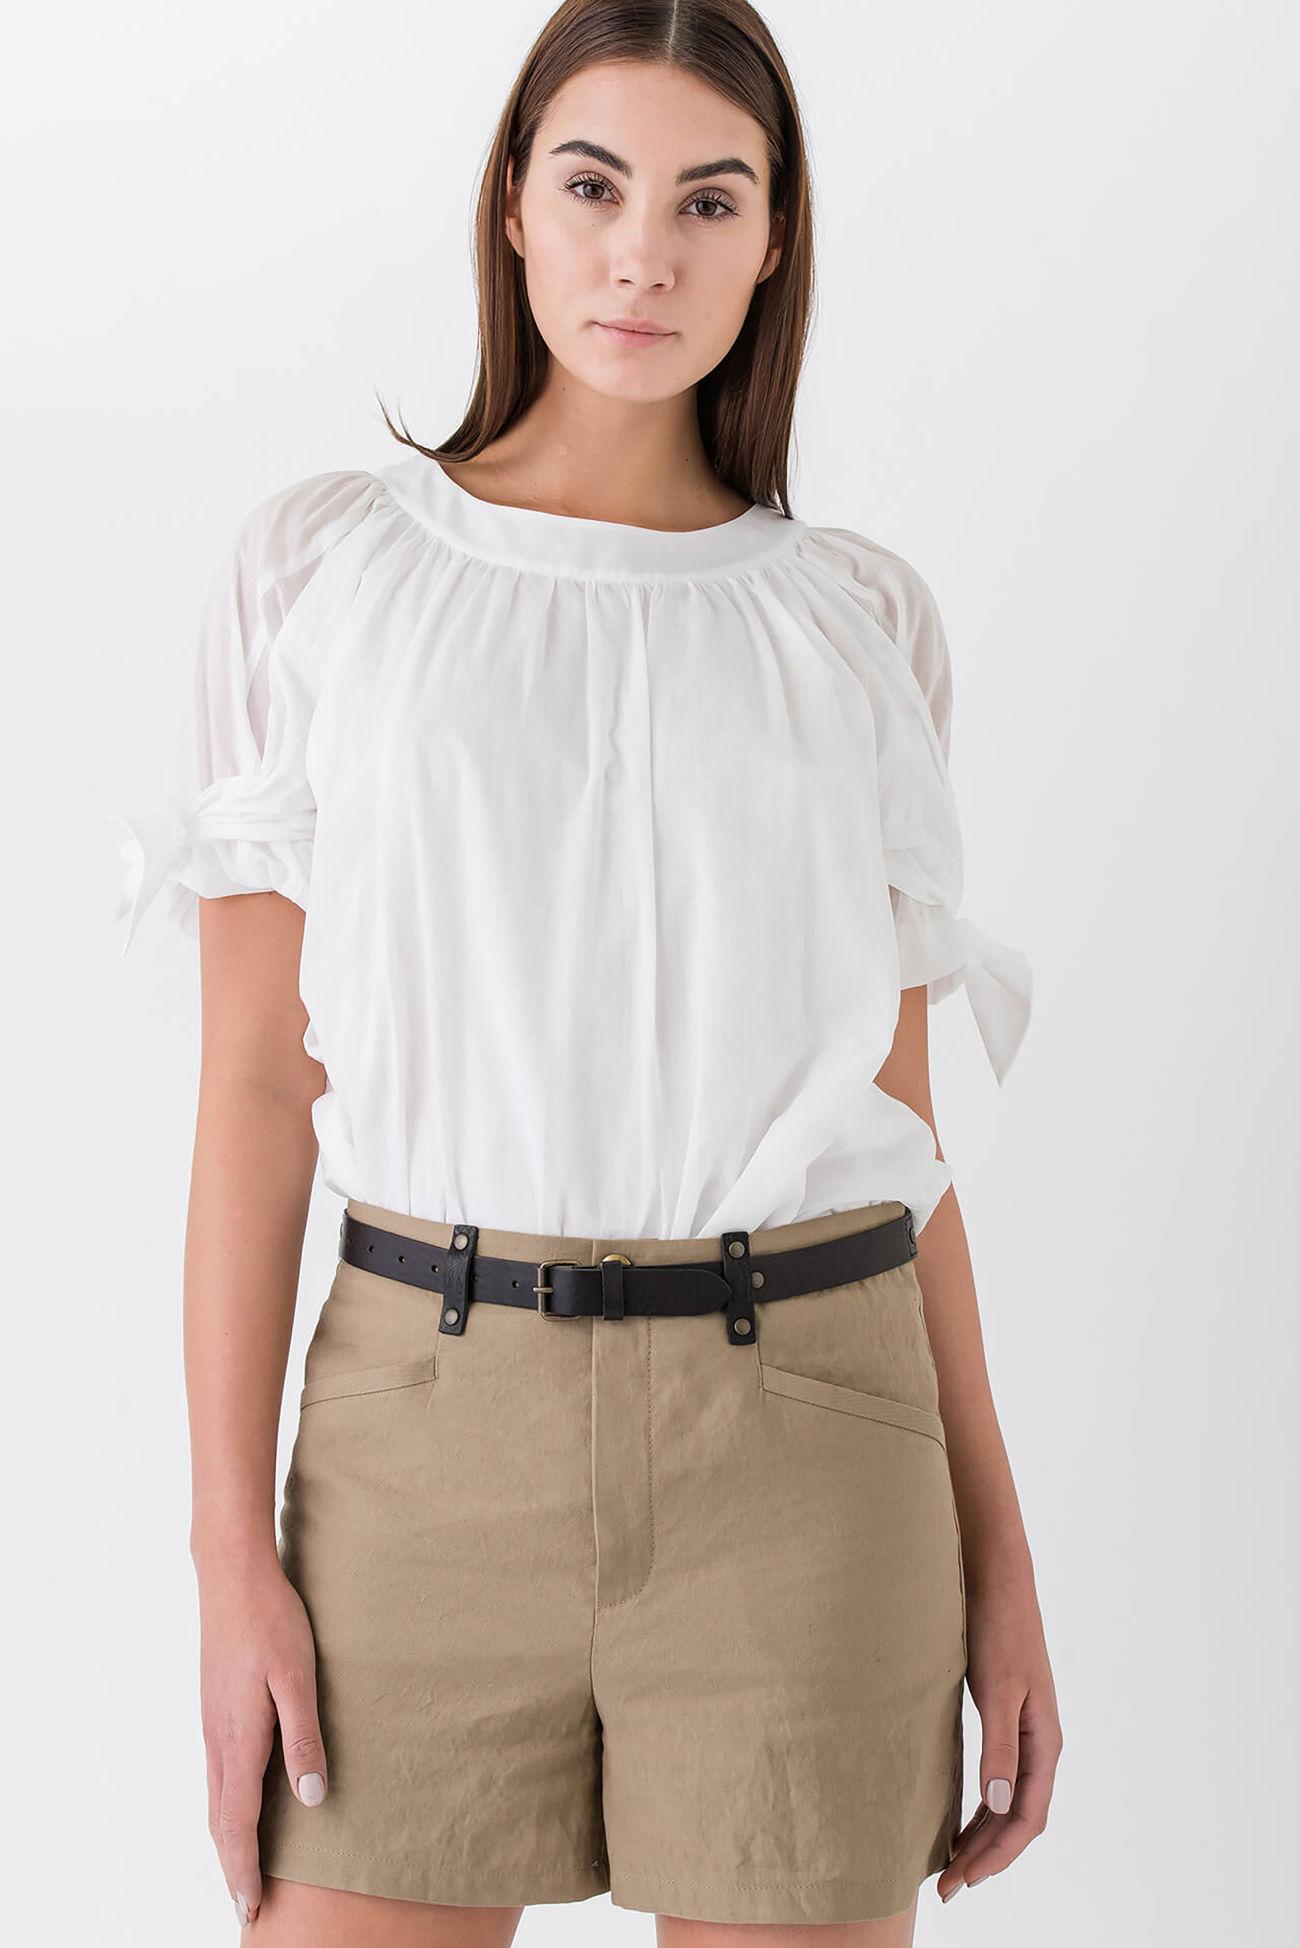 Elaborate, playful blouse made of voile with short sleeves